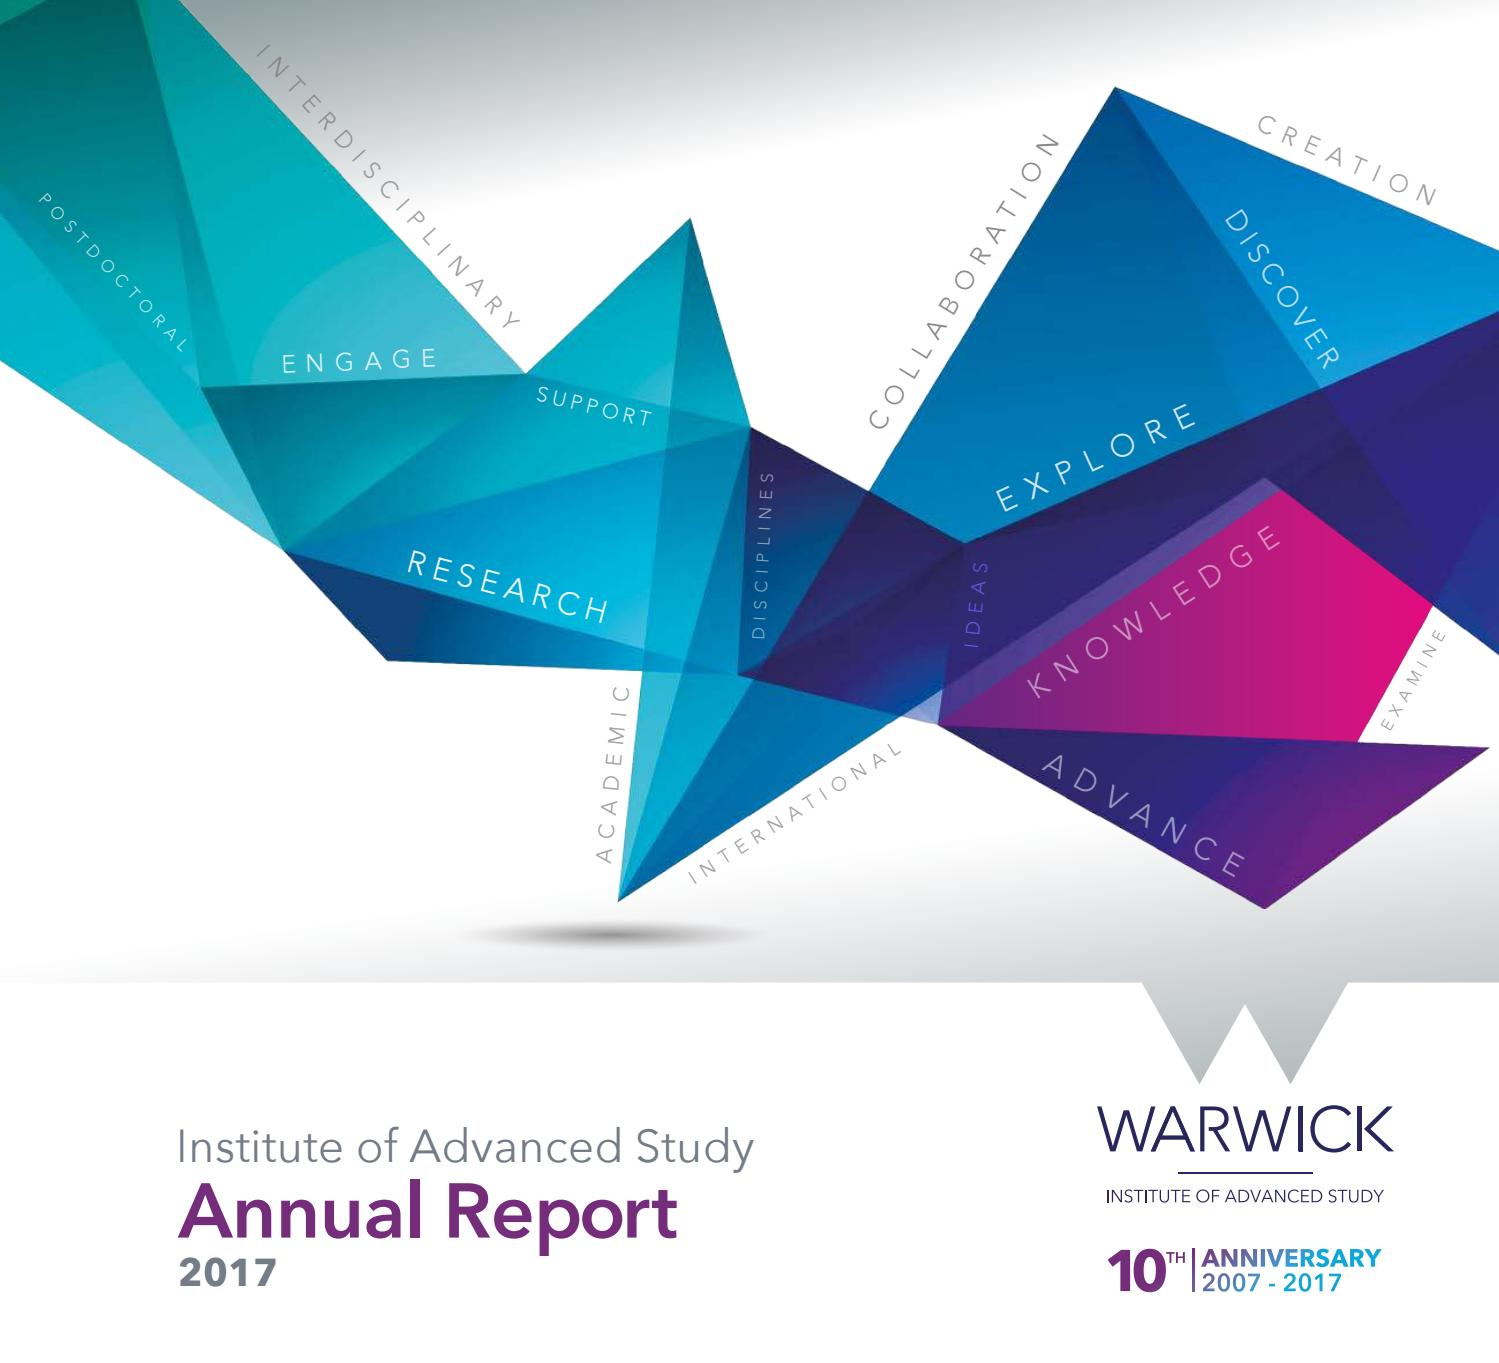 IAS Annual Report 2017 by Institute of Advanced Study - Warwick - issuu